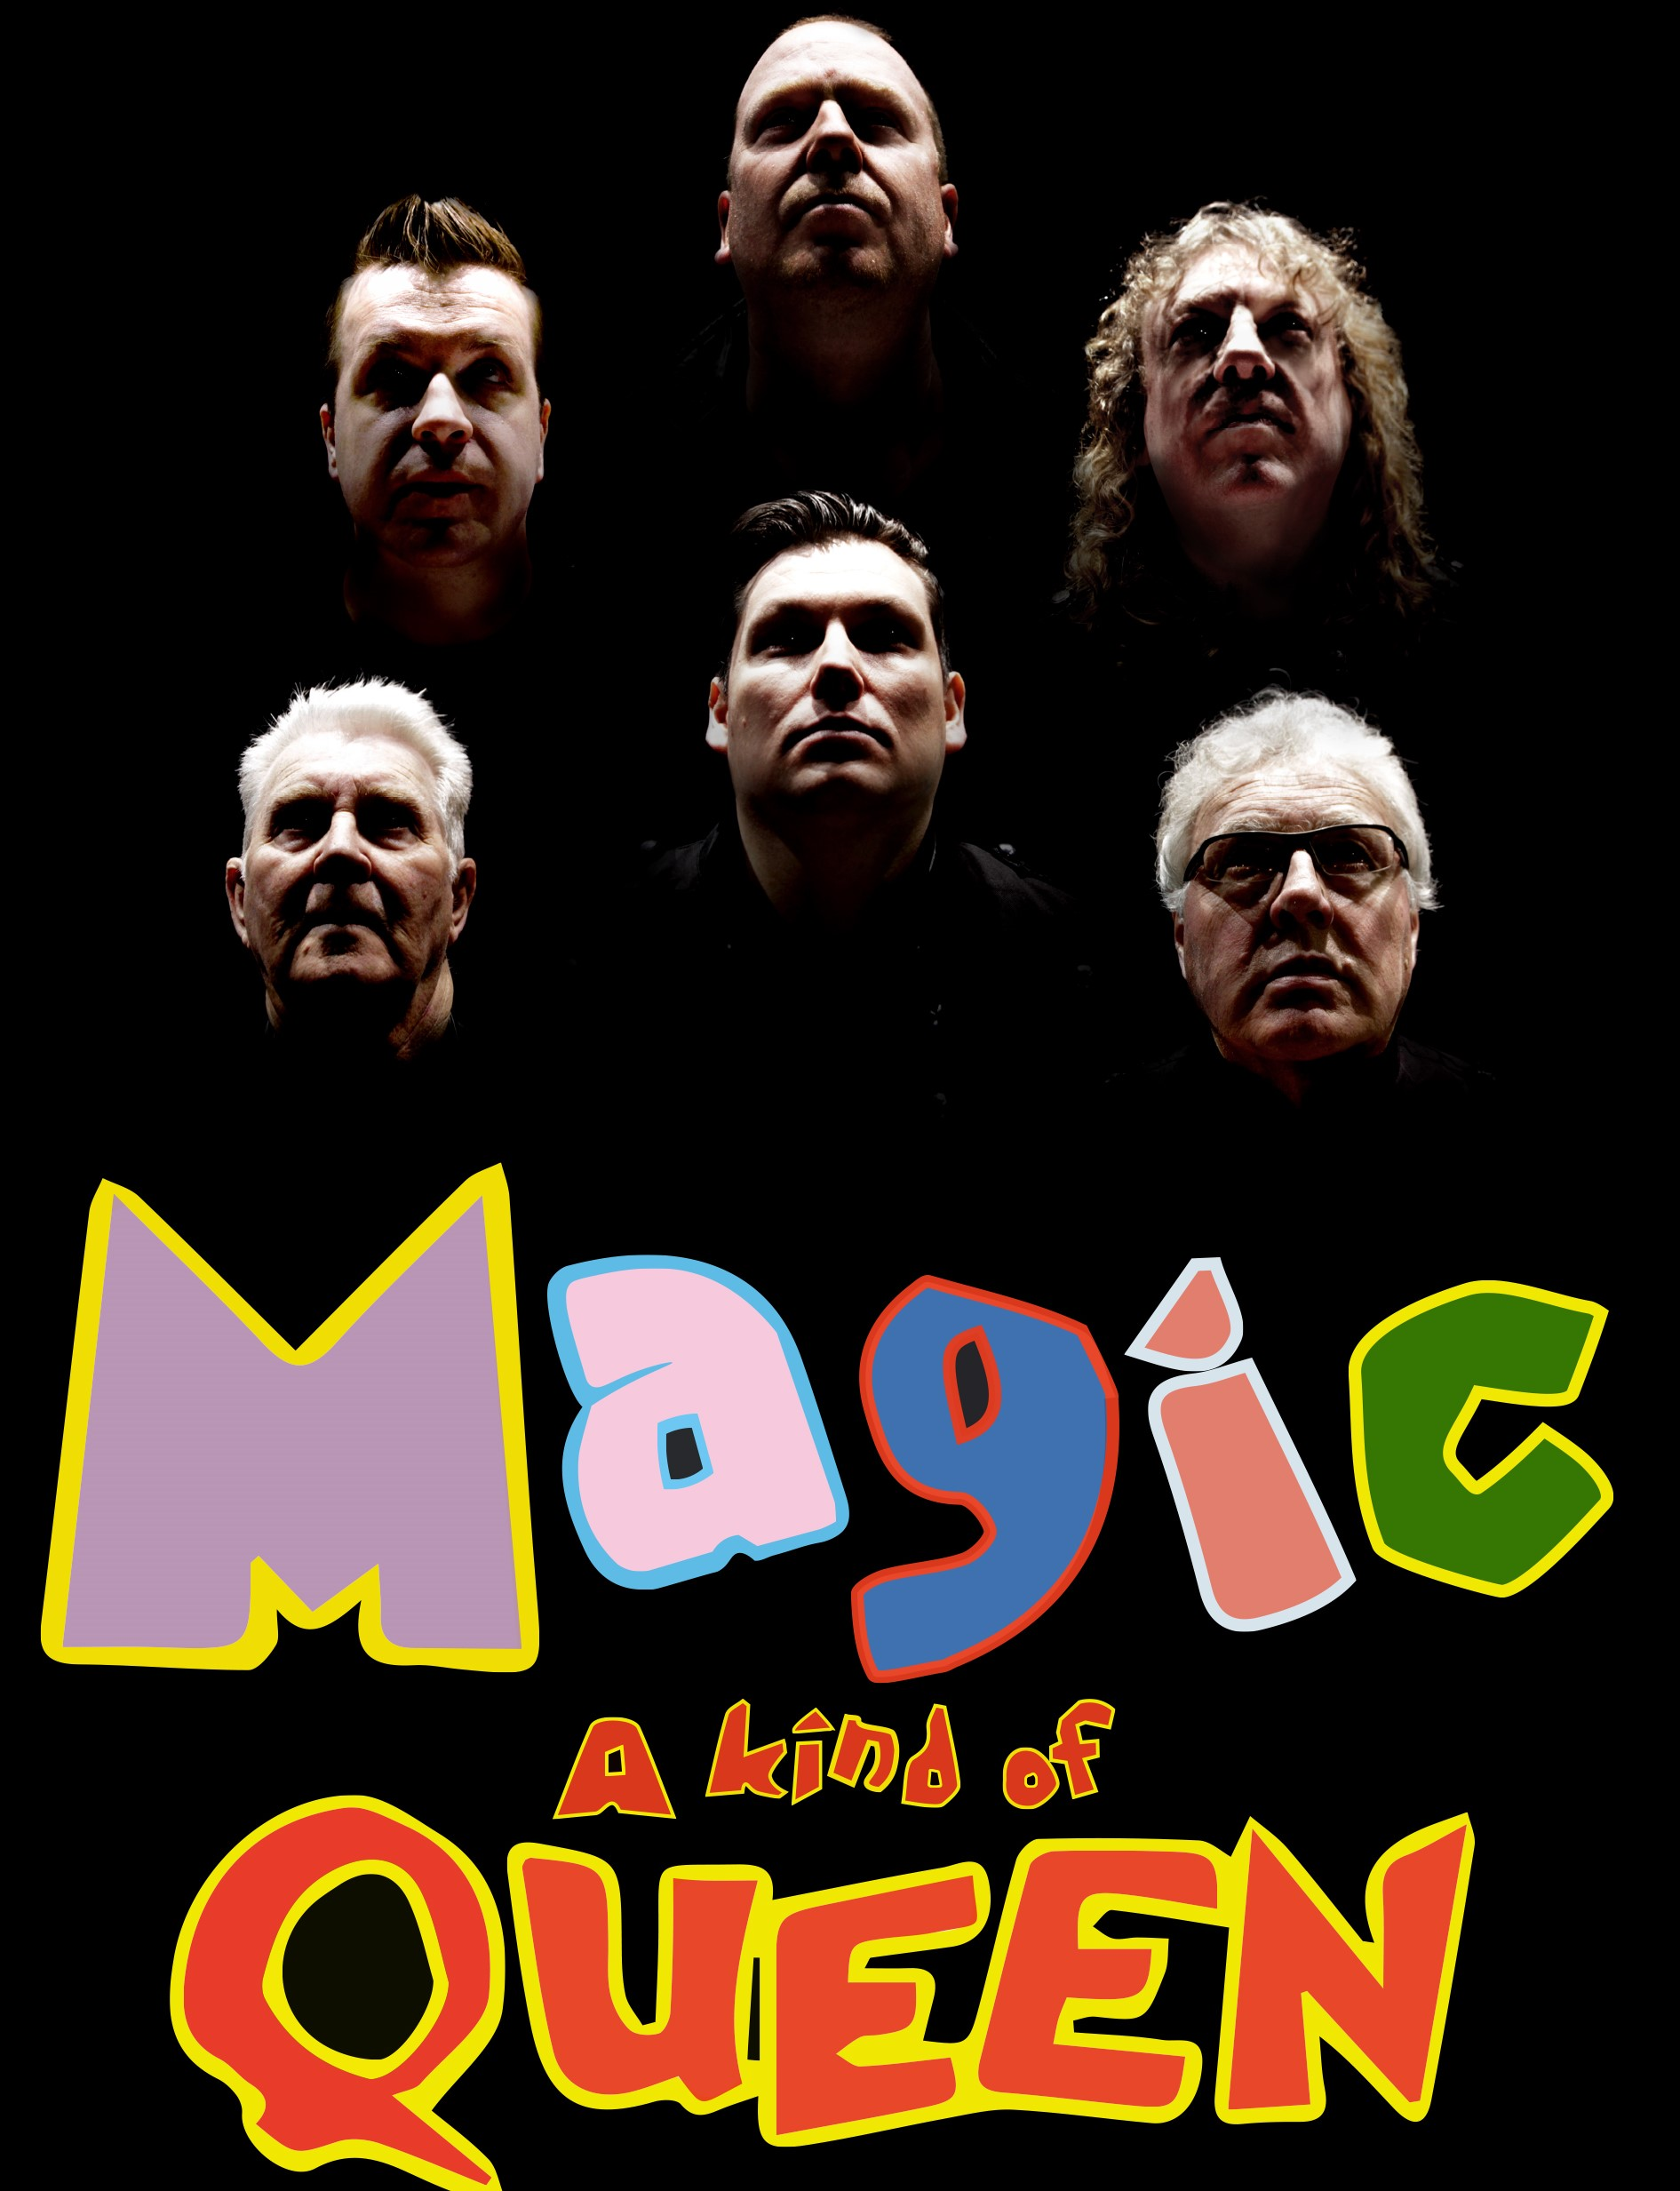 Magic - A Kind of Queen banner image